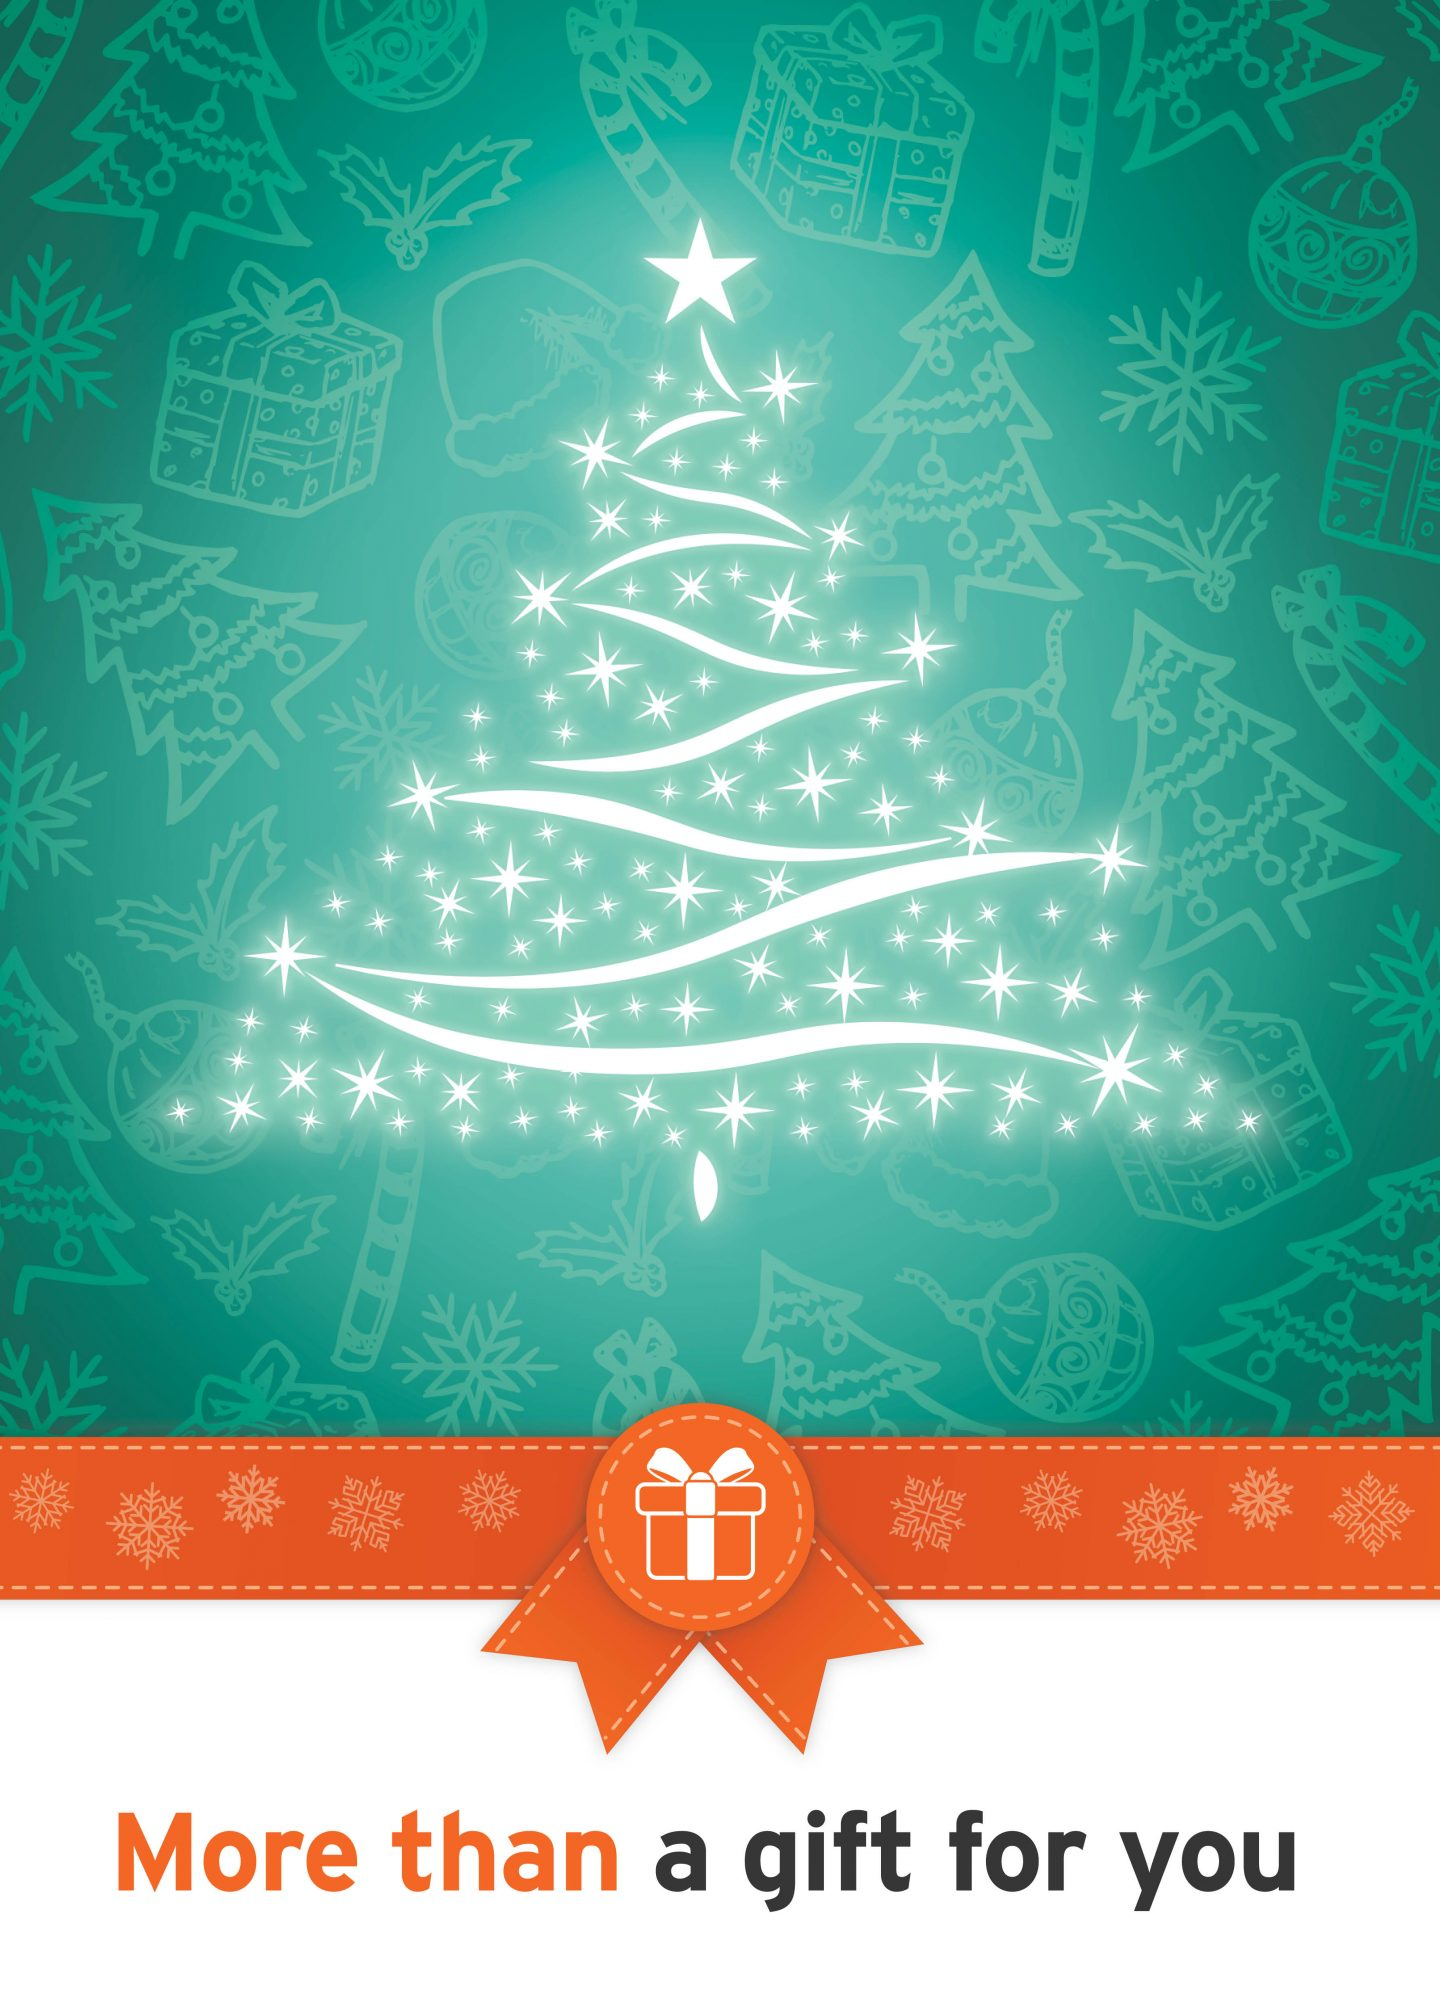 More Than a Gift voucher - Centrepoint